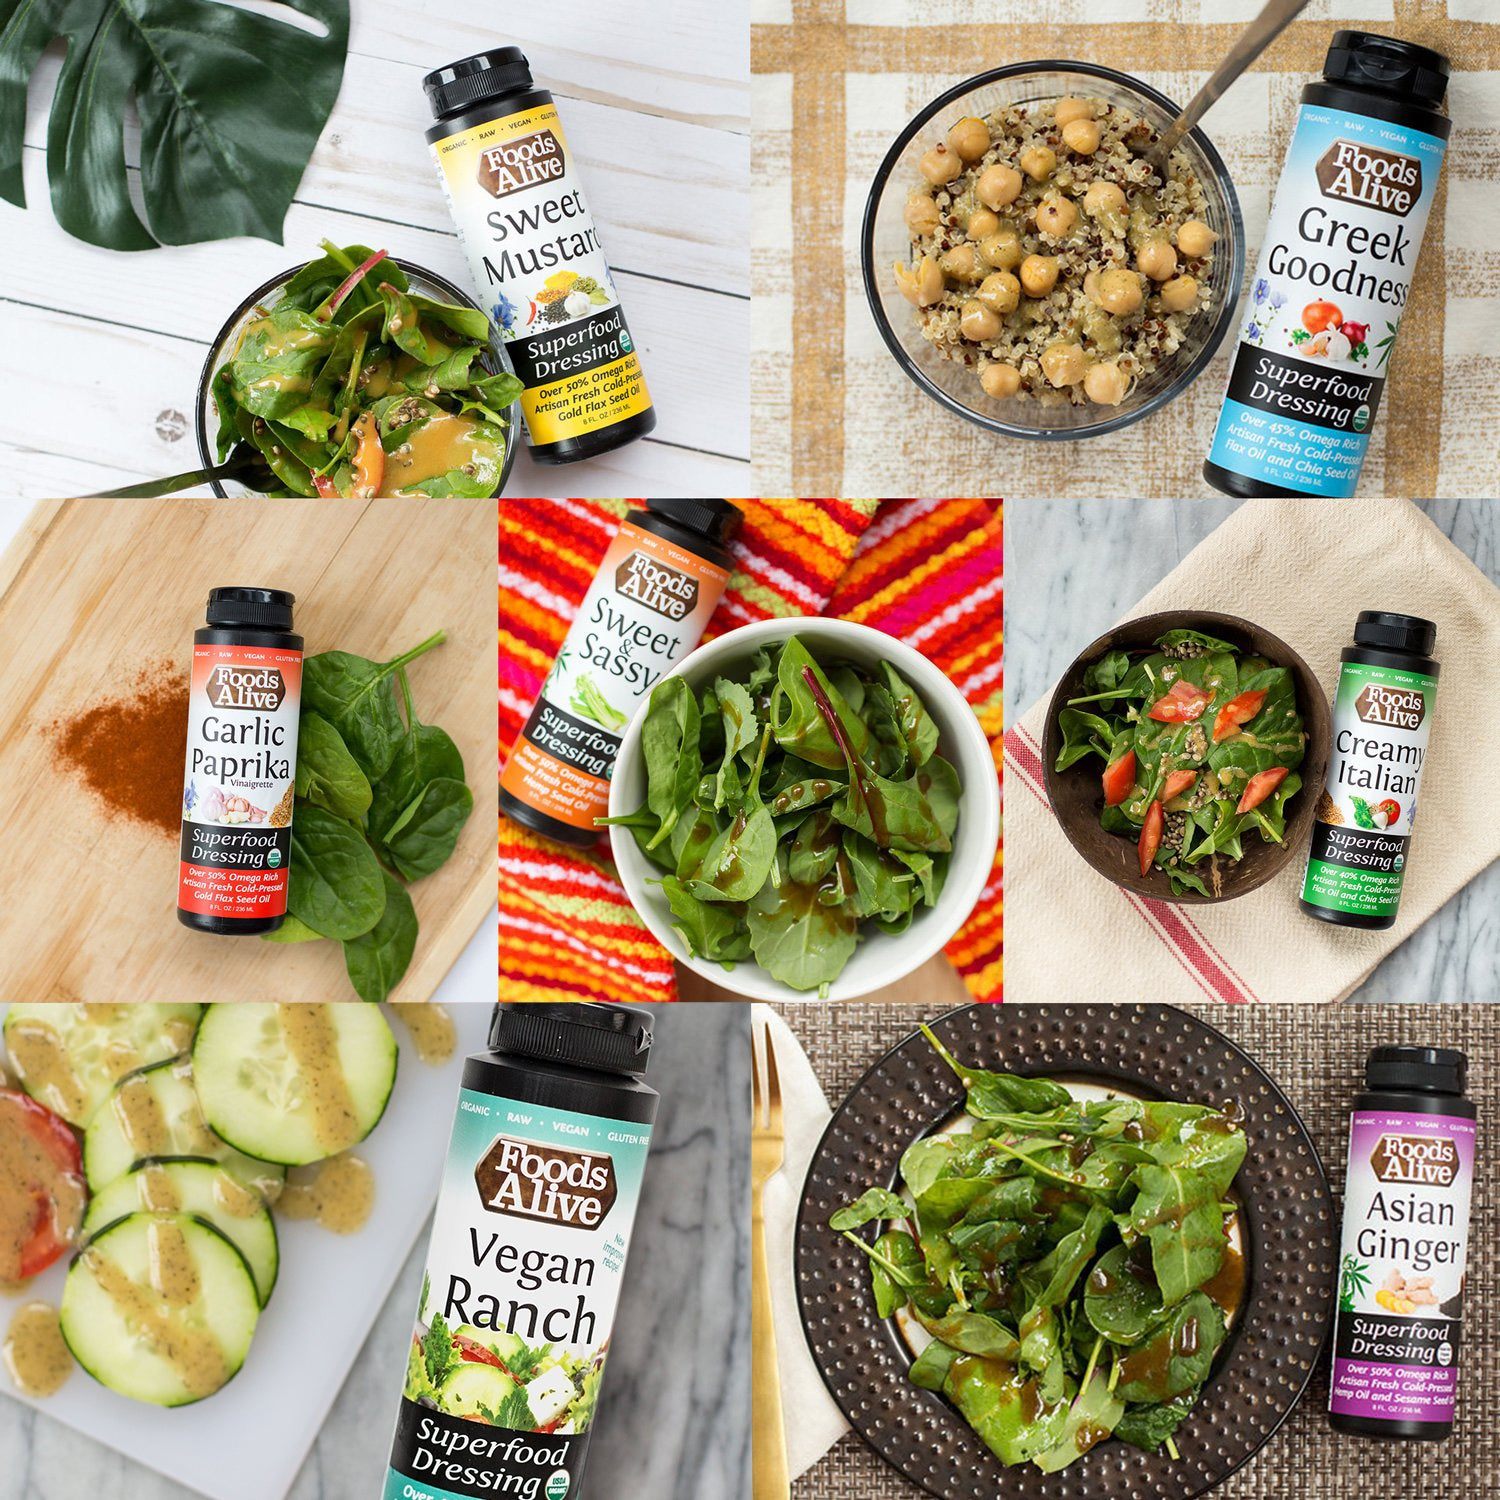 Artisan Cold-Pressed Salad Dressings | Organic, Non-GMO, Gluten-Free, Raw, Vegan, Kosher | Asian, Ranch, Italian, Greek, Garlic Paprika, Sweet Mustard, Sweet & Sassy